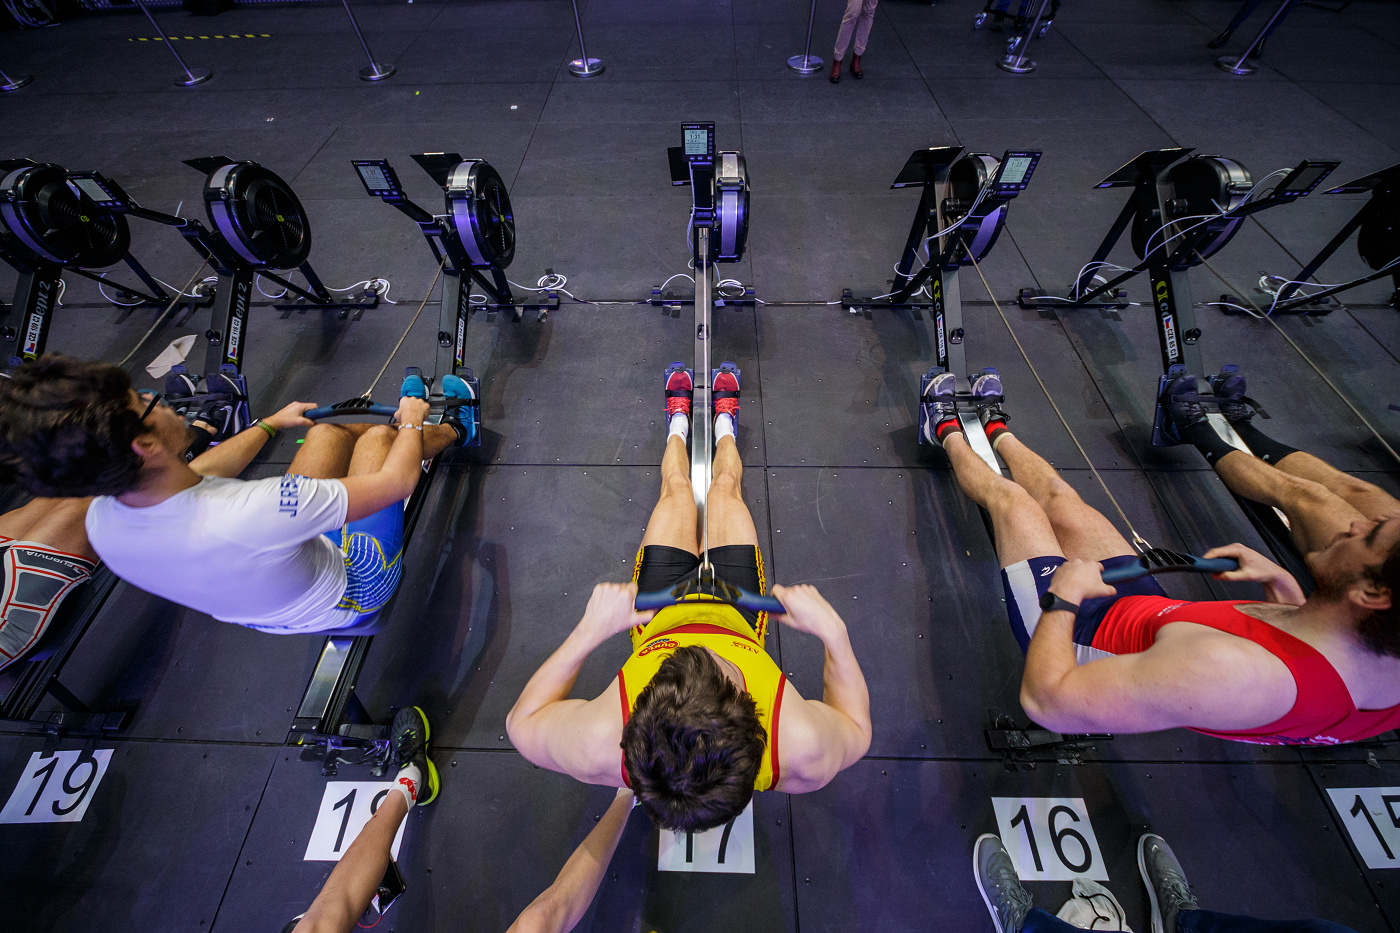 IndoorRowing2019_10